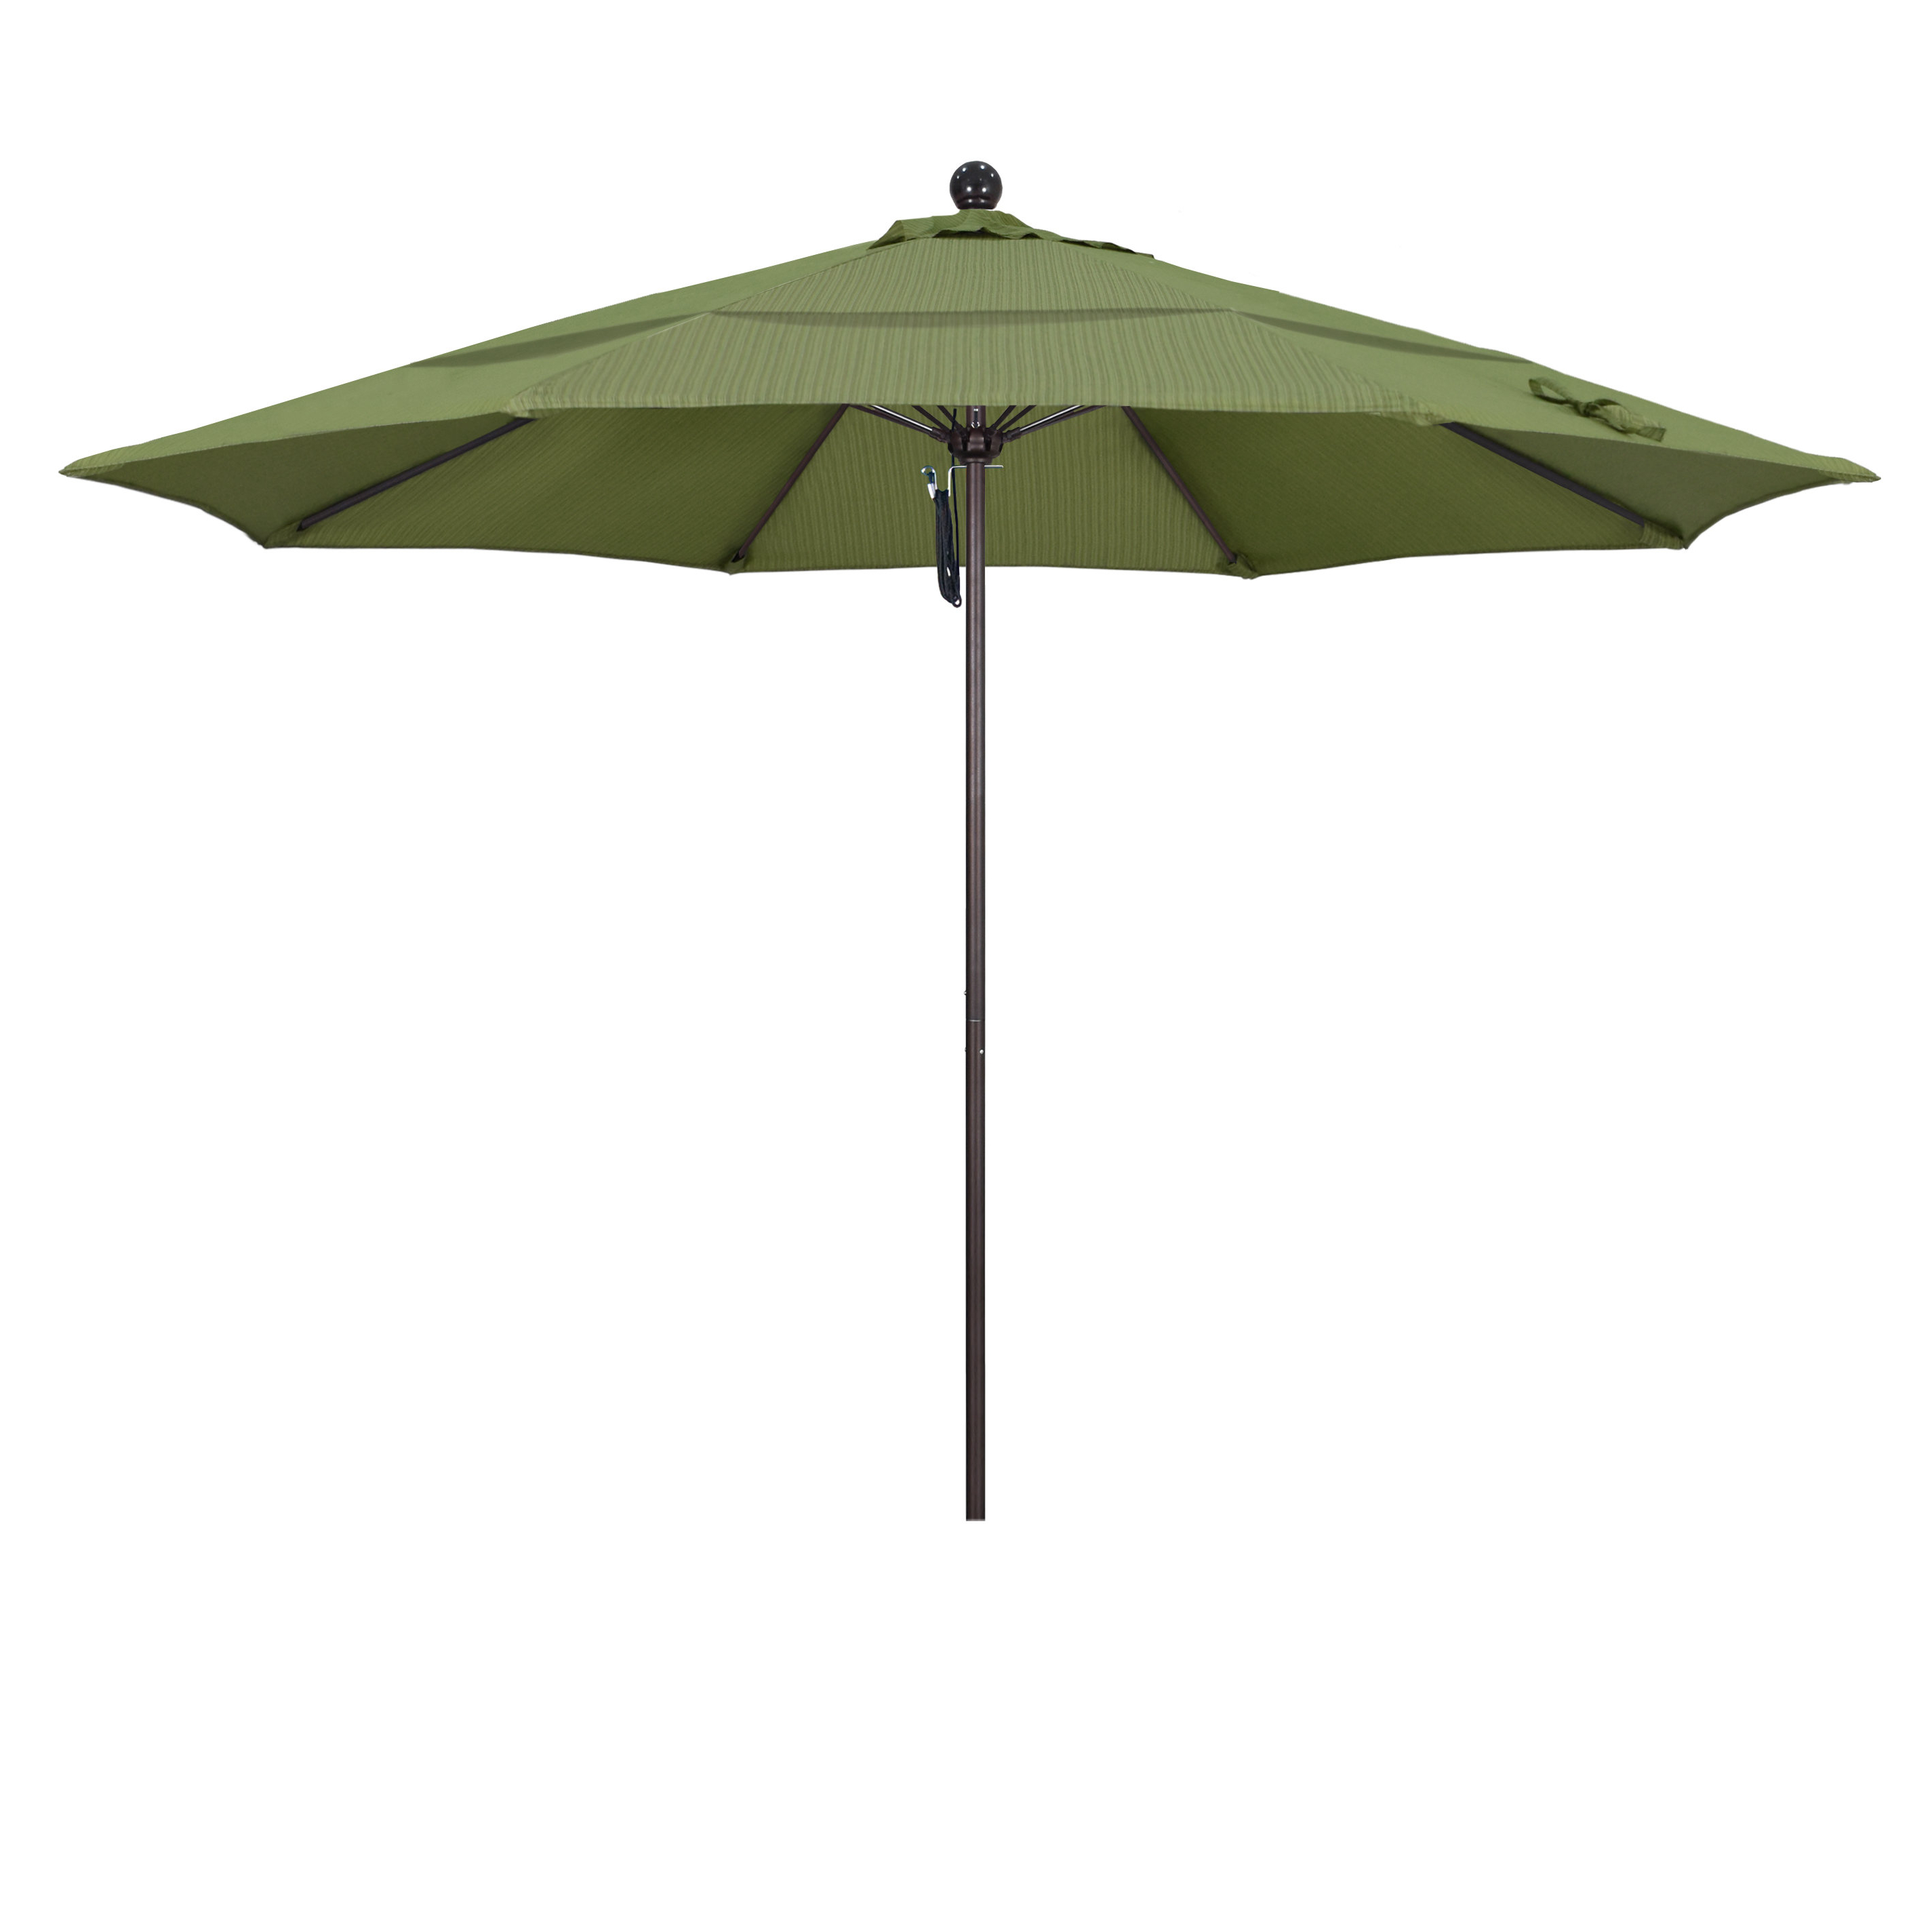 Benson 11' Market Umbrella Pertaining To Best And Newest Launceston Market Umbrellas (View 6 of 20)